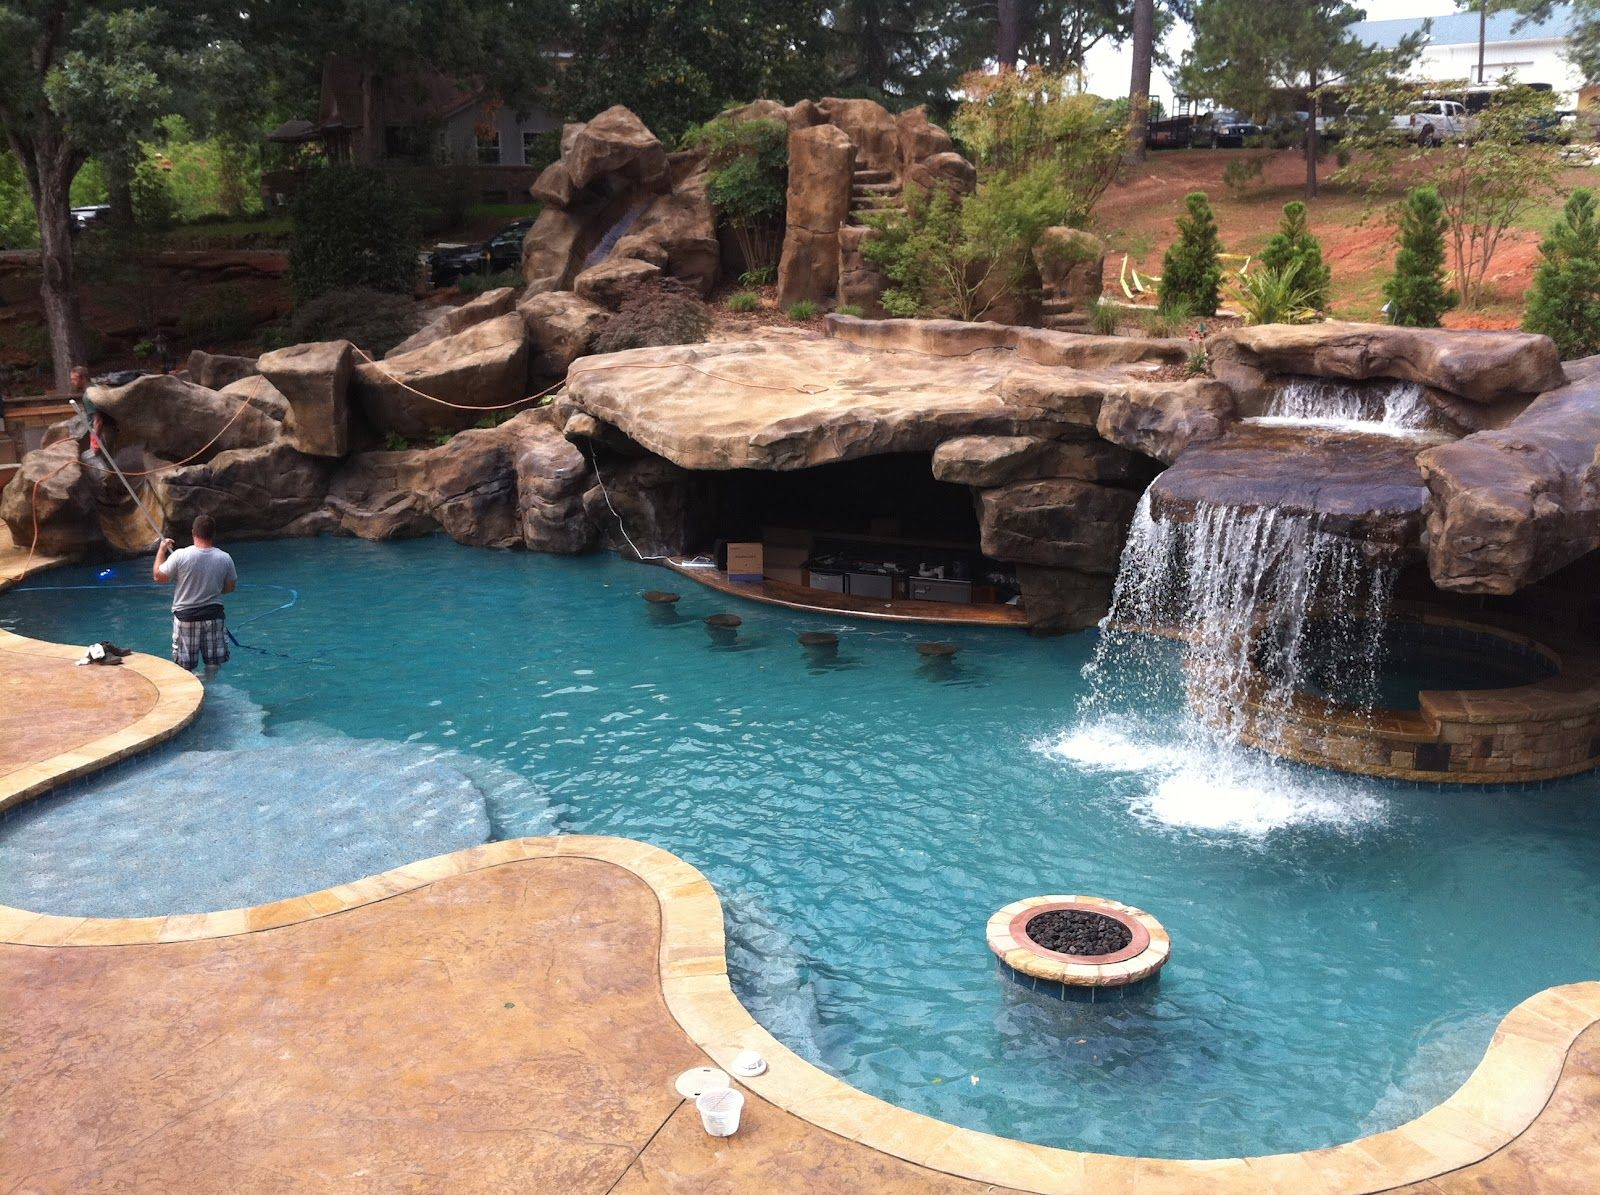 Custom Pool & Faux Rock Grotto & 40' Slide by Arno Hanekom